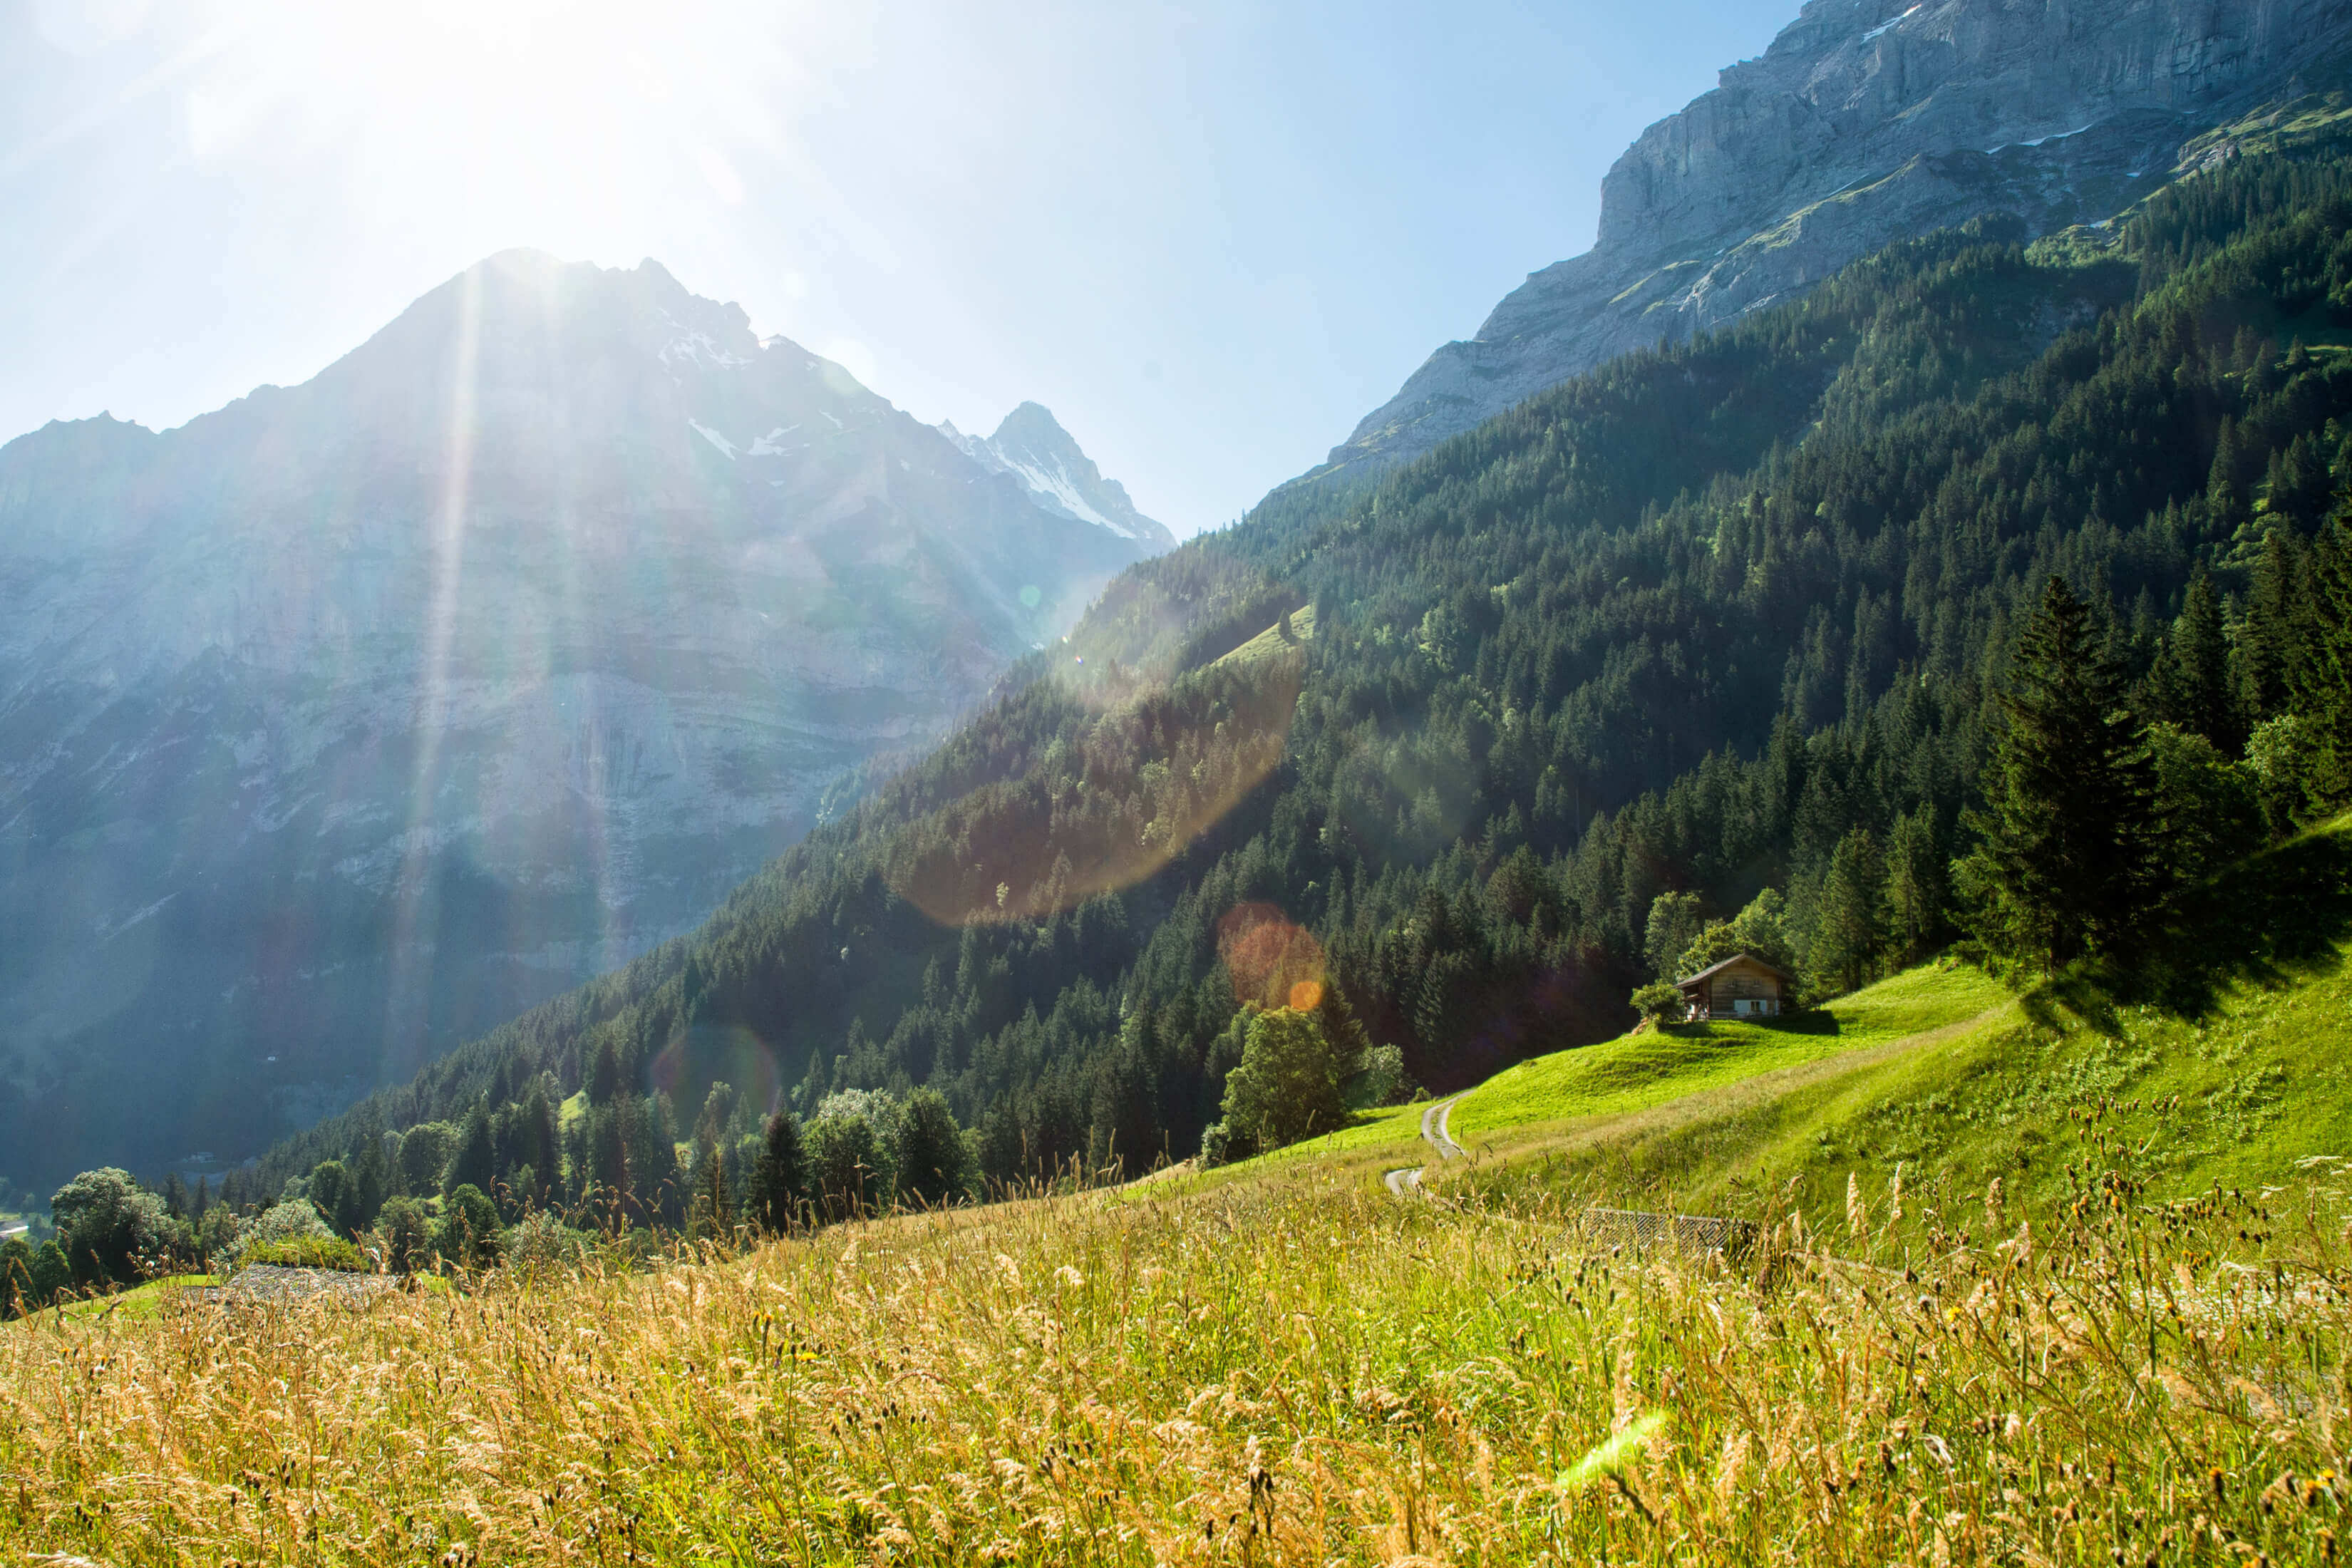 Summertime in Grindelwald's Alps